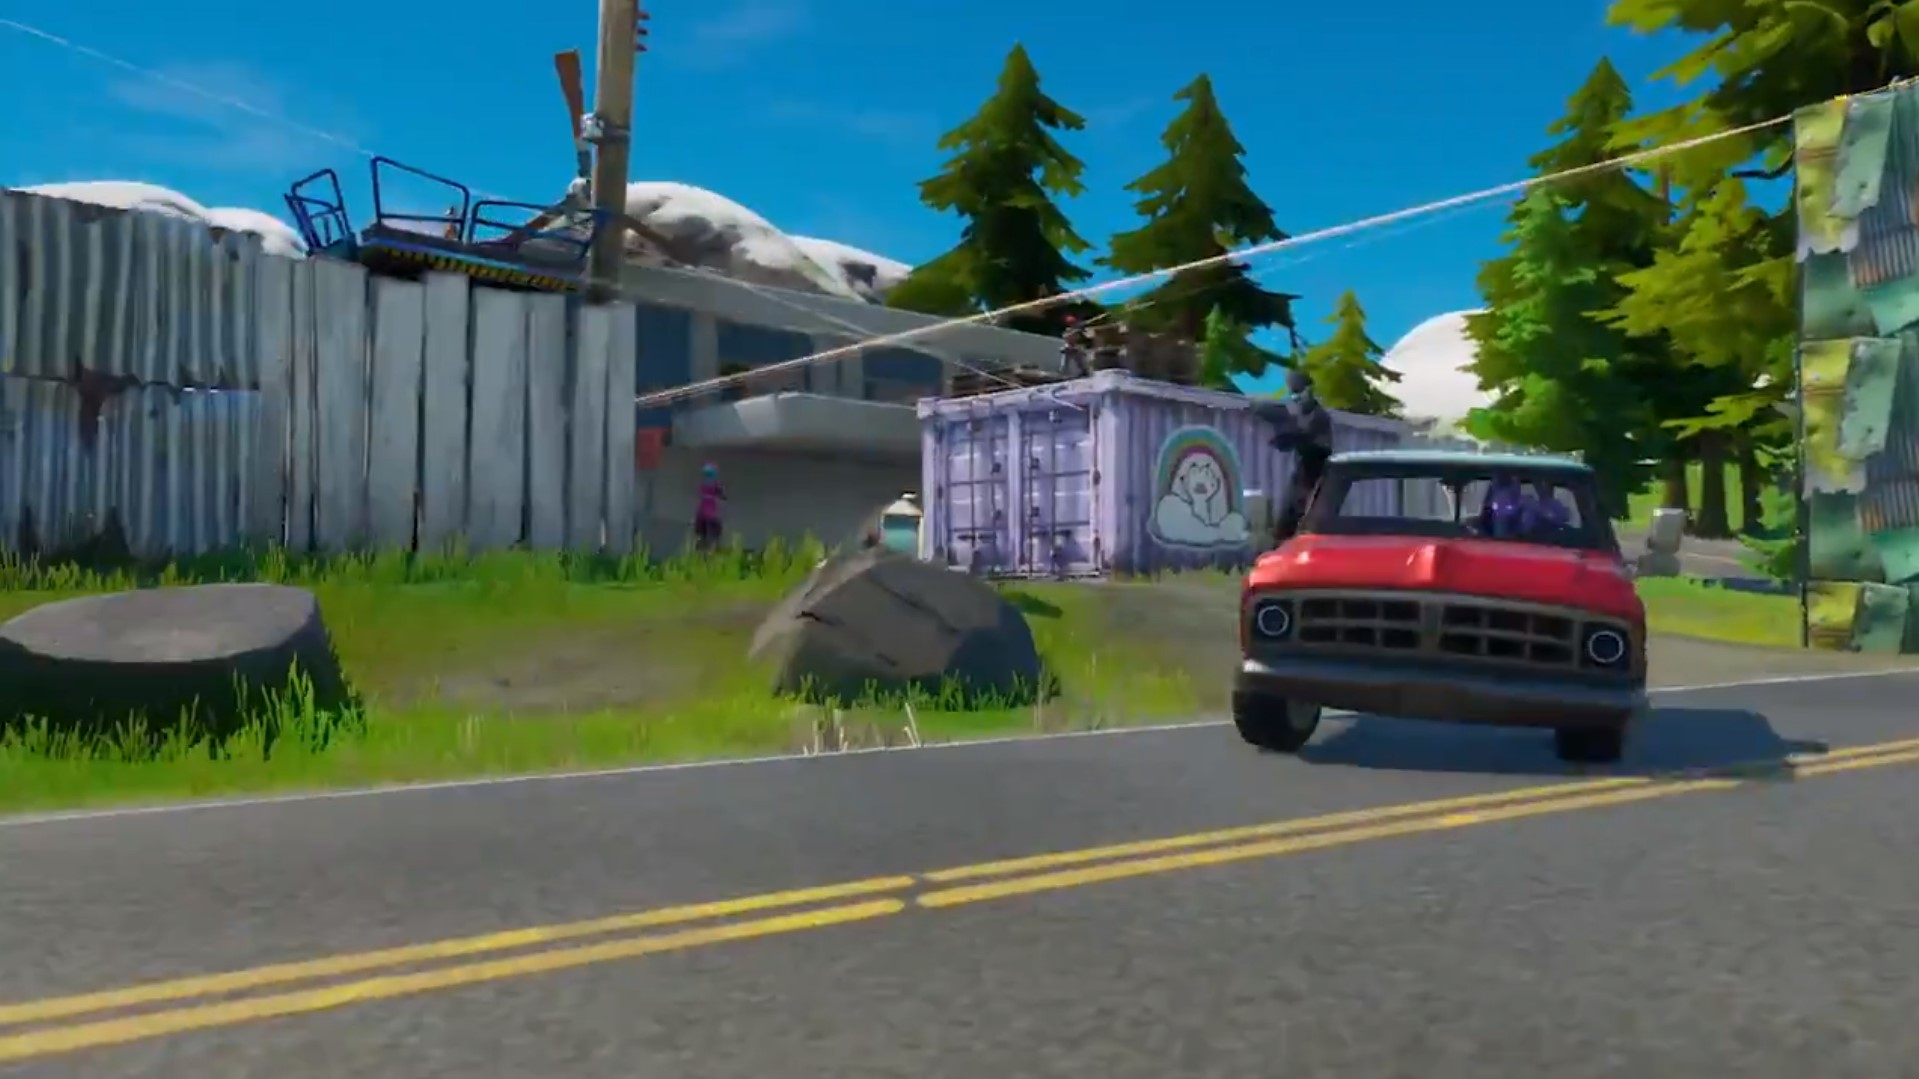 fortnite car locations how to drive cars fortnite car locations how to drive cars